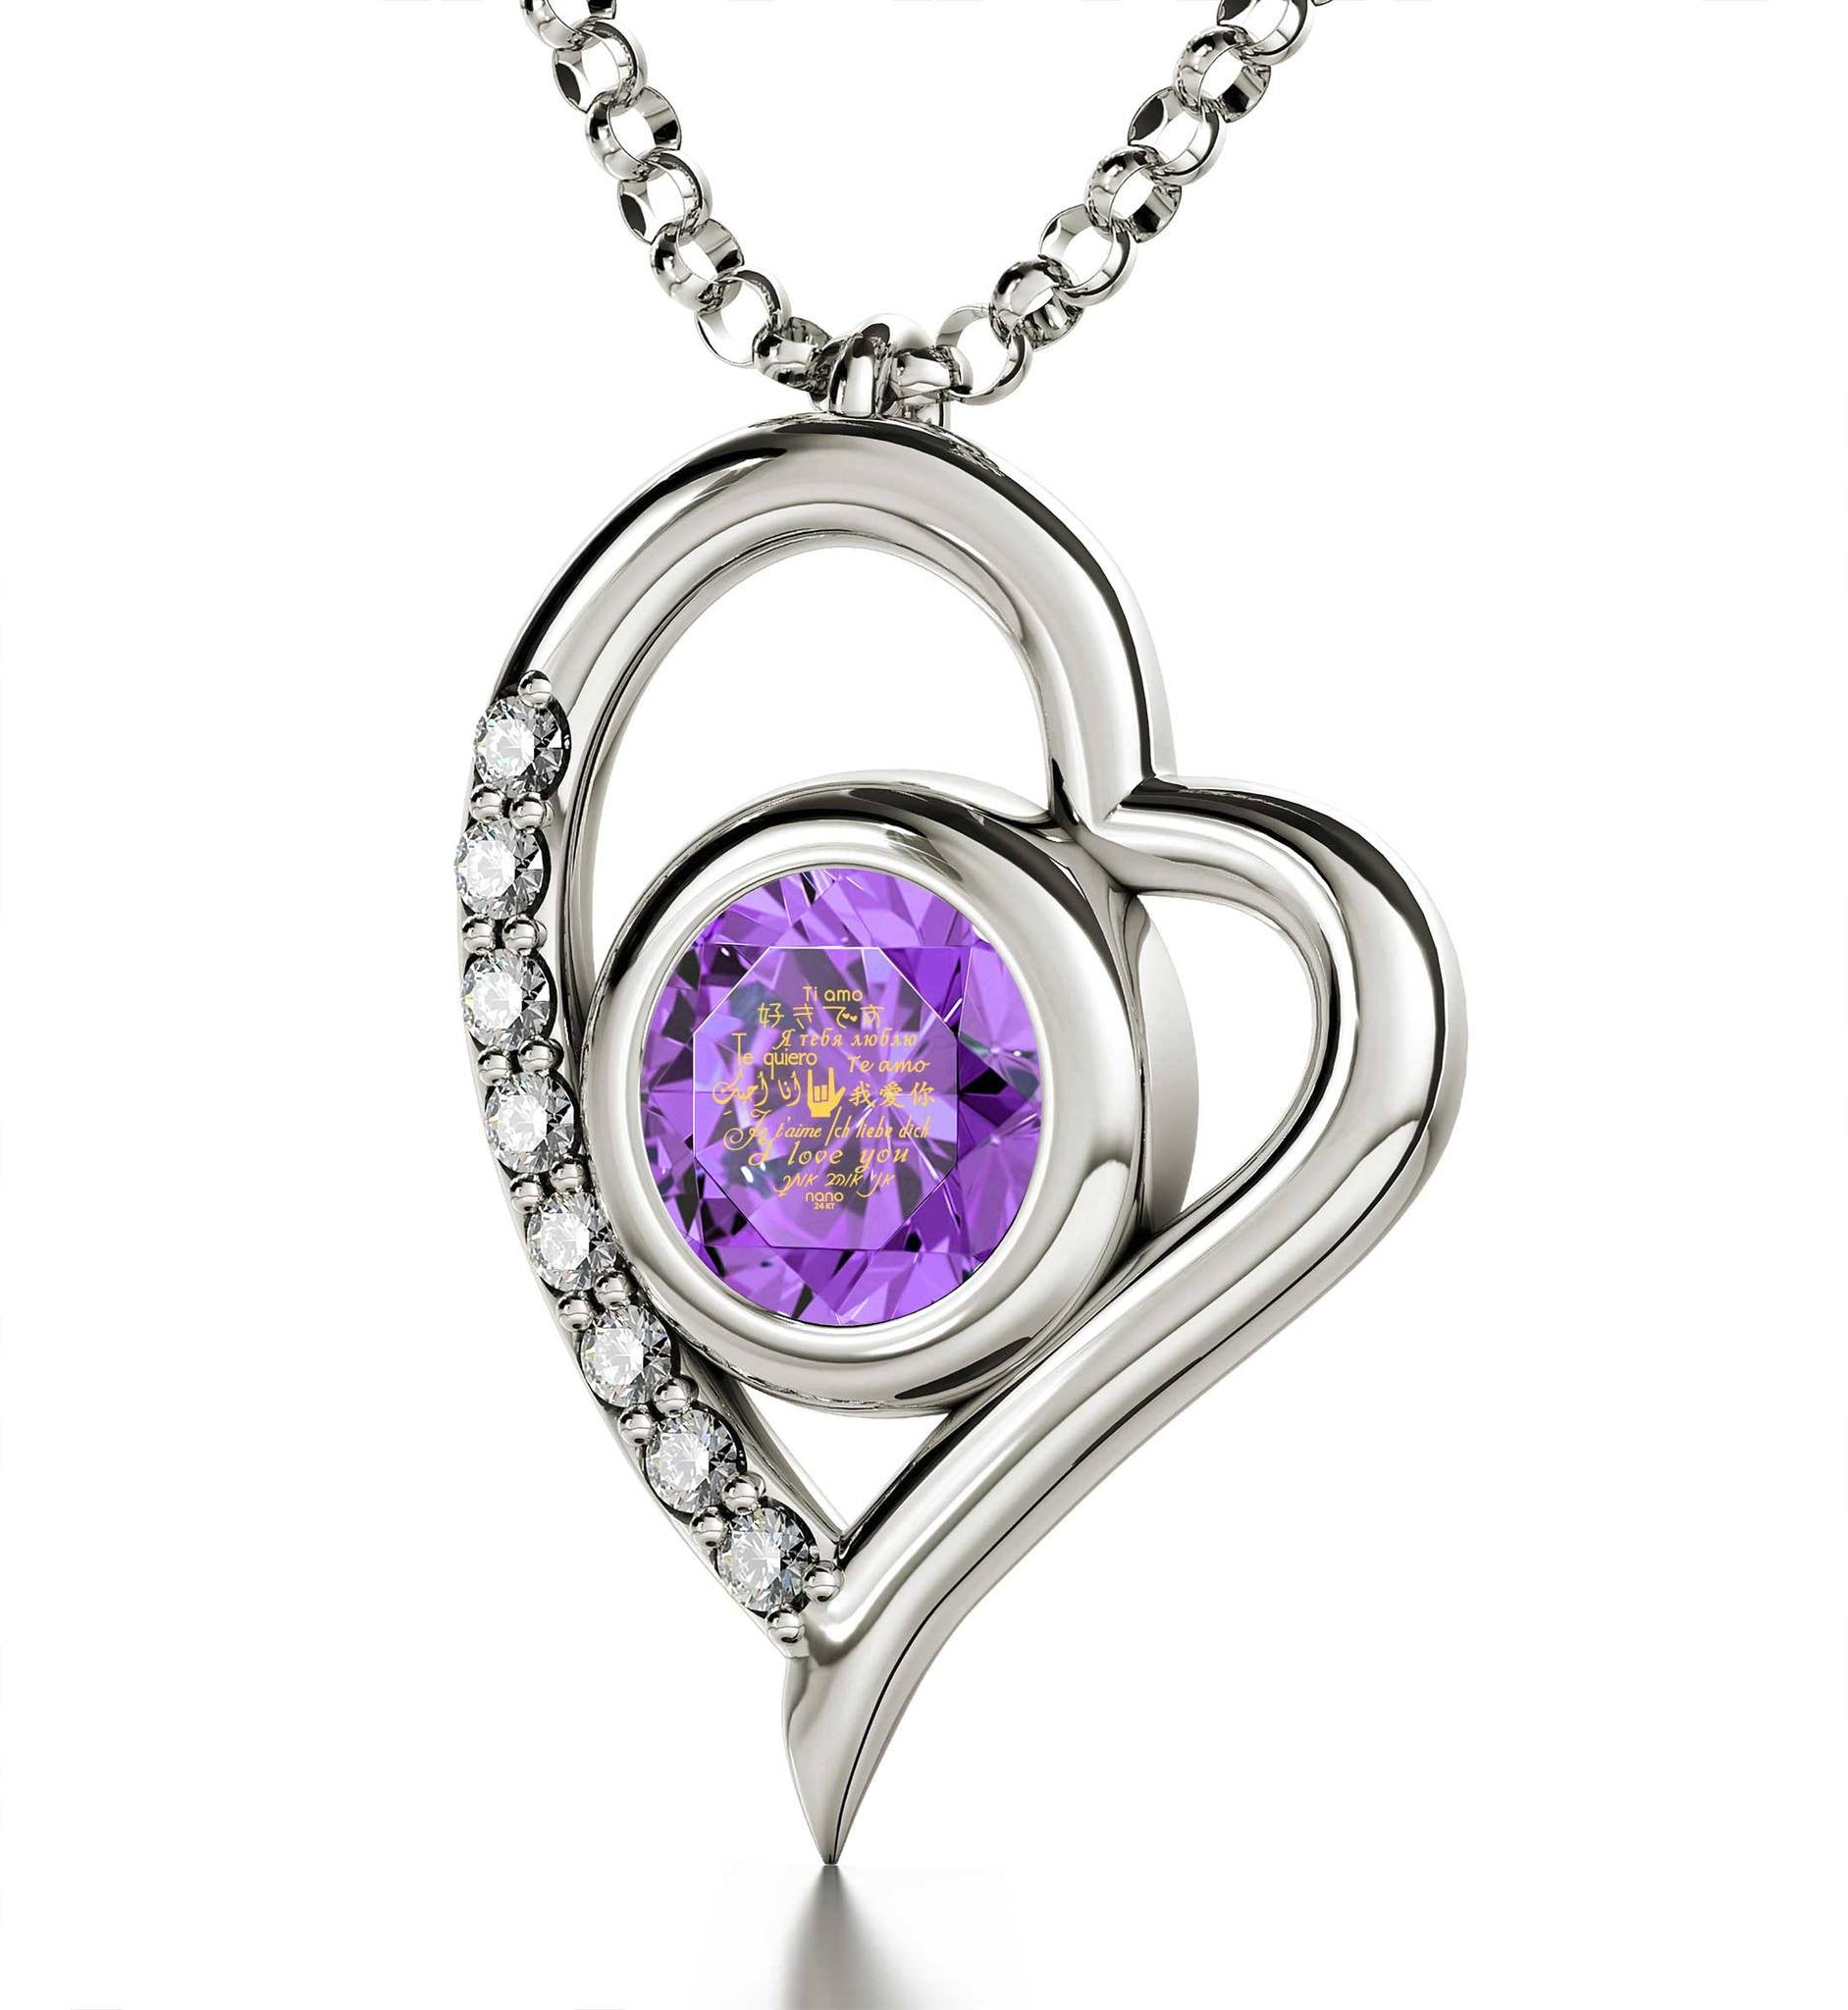 "Girlfriend Birthday Ideas, ""I Love You"" in 12 Languages, Purple Stone Jewelry, Romantic Valentines Gifts for Her"